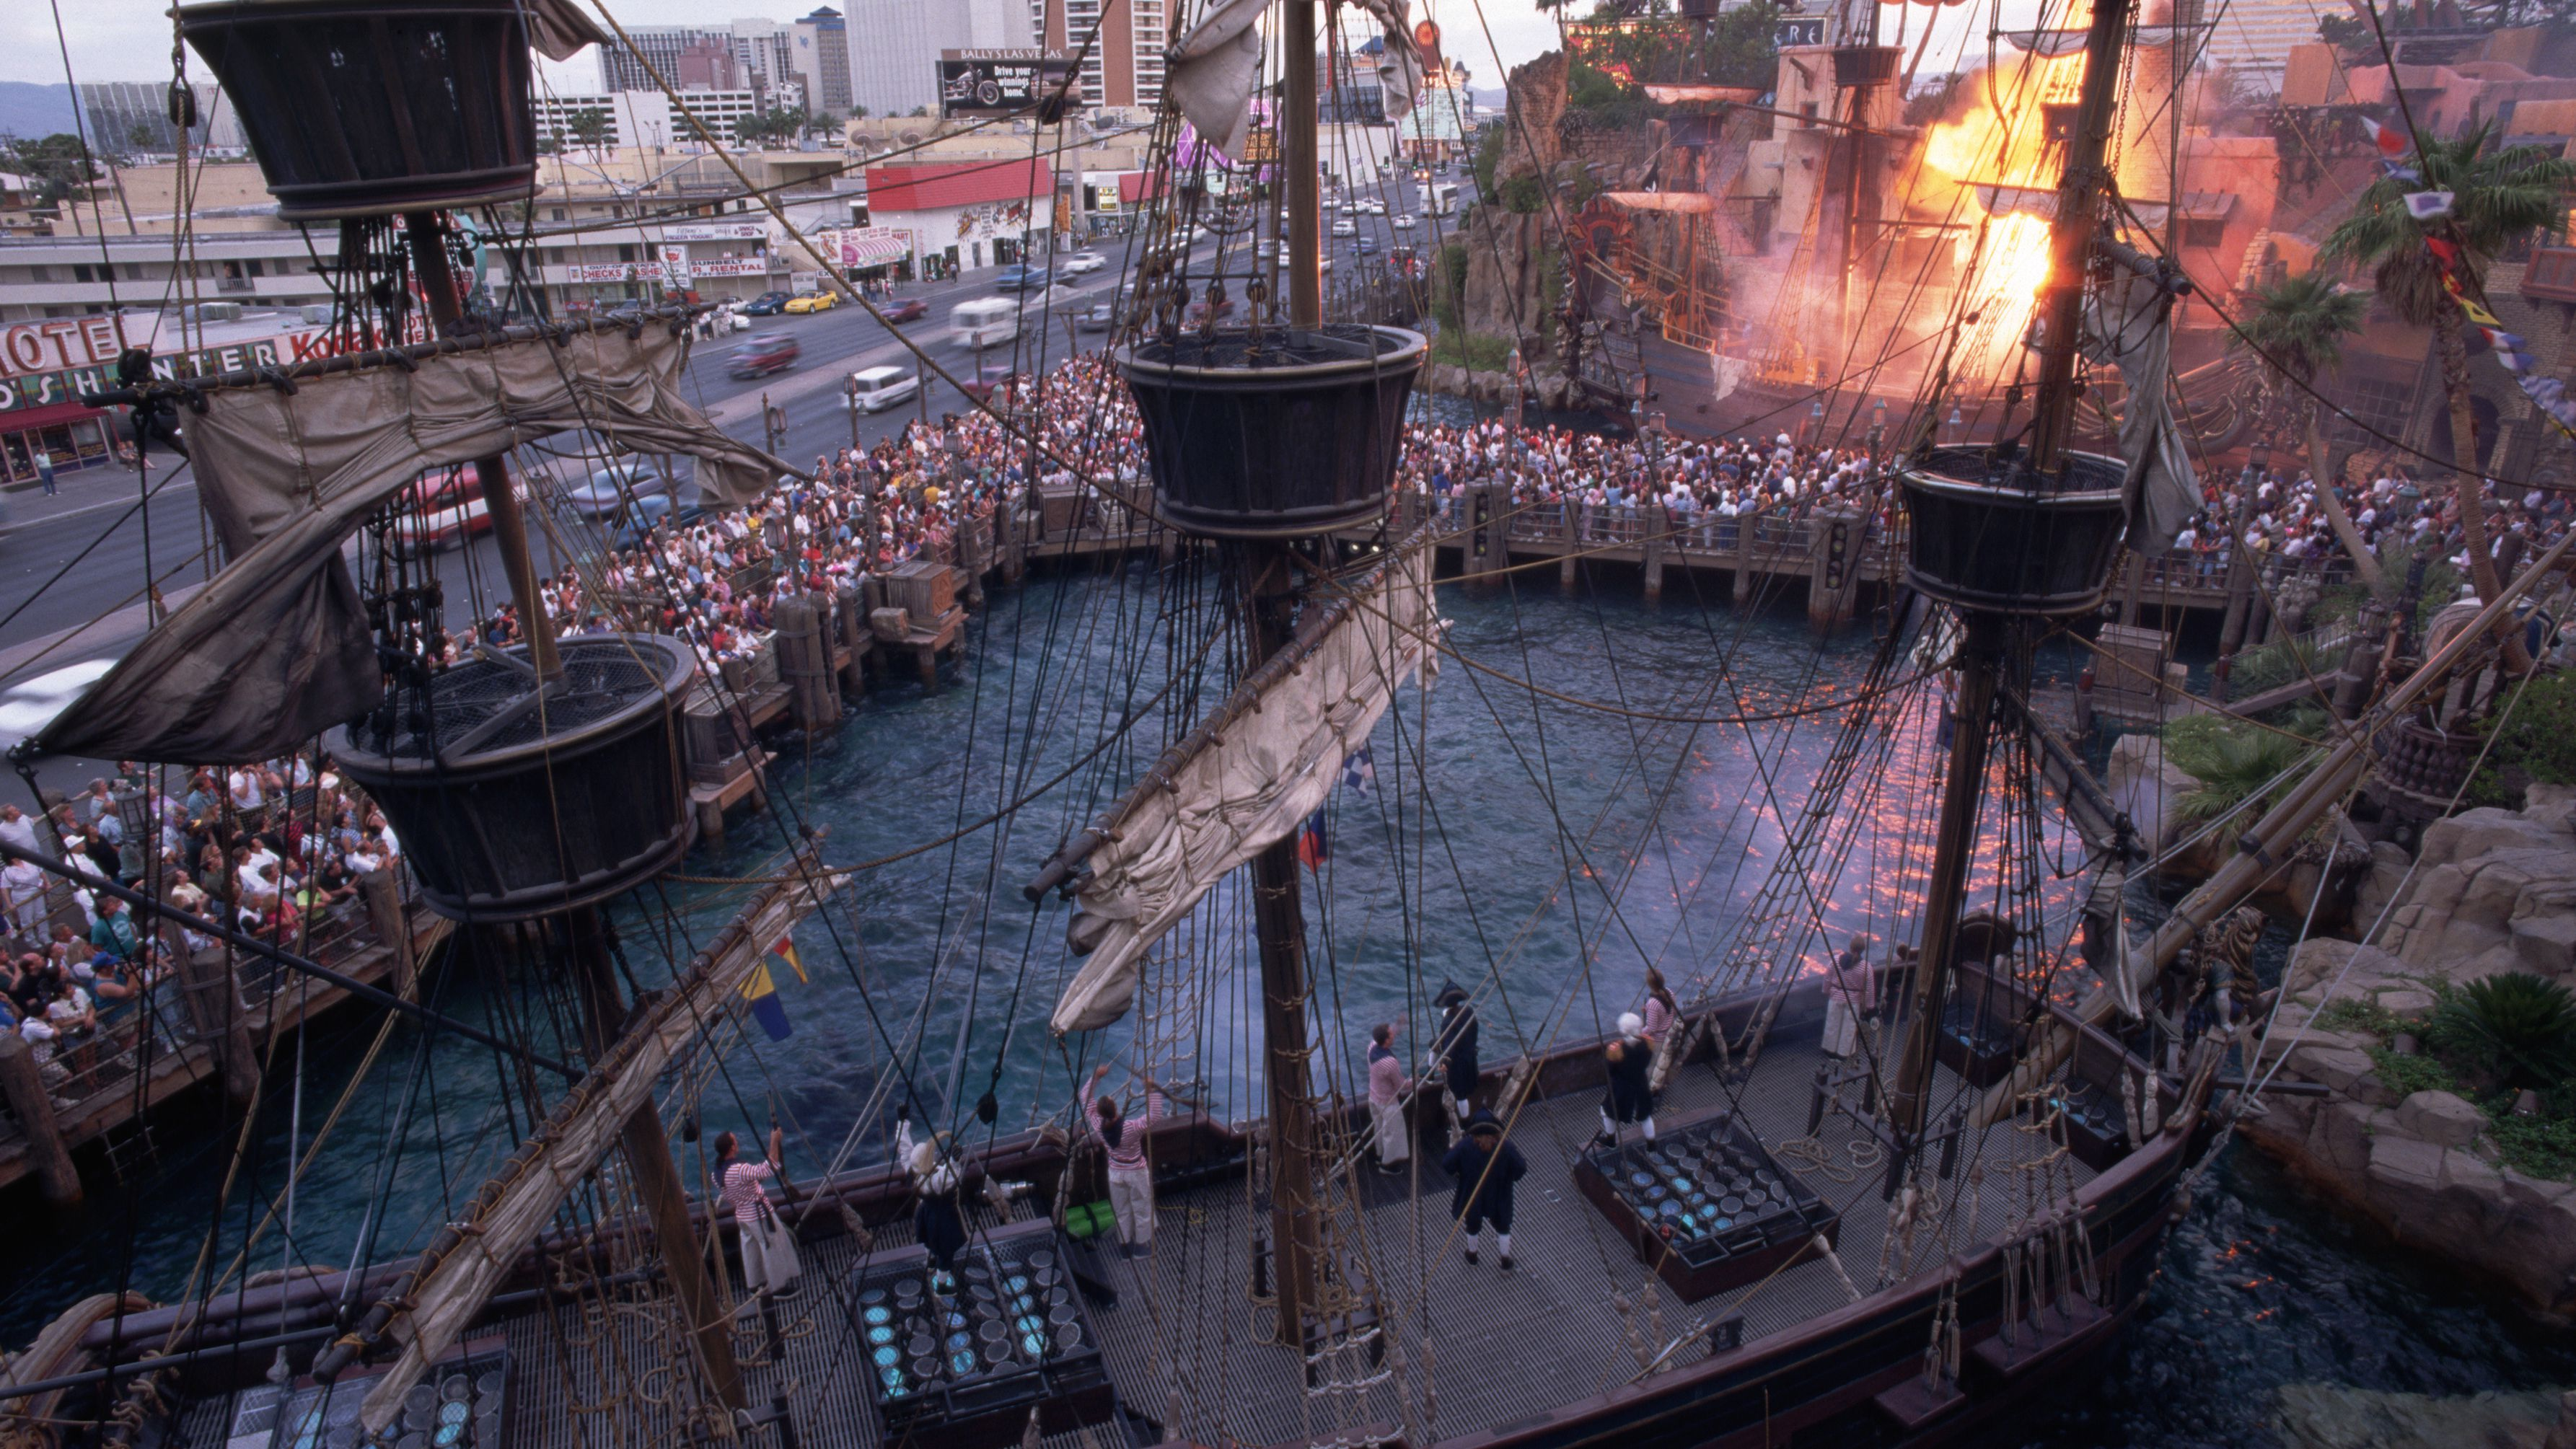 Sirens Of Treasure Island Show Is No More